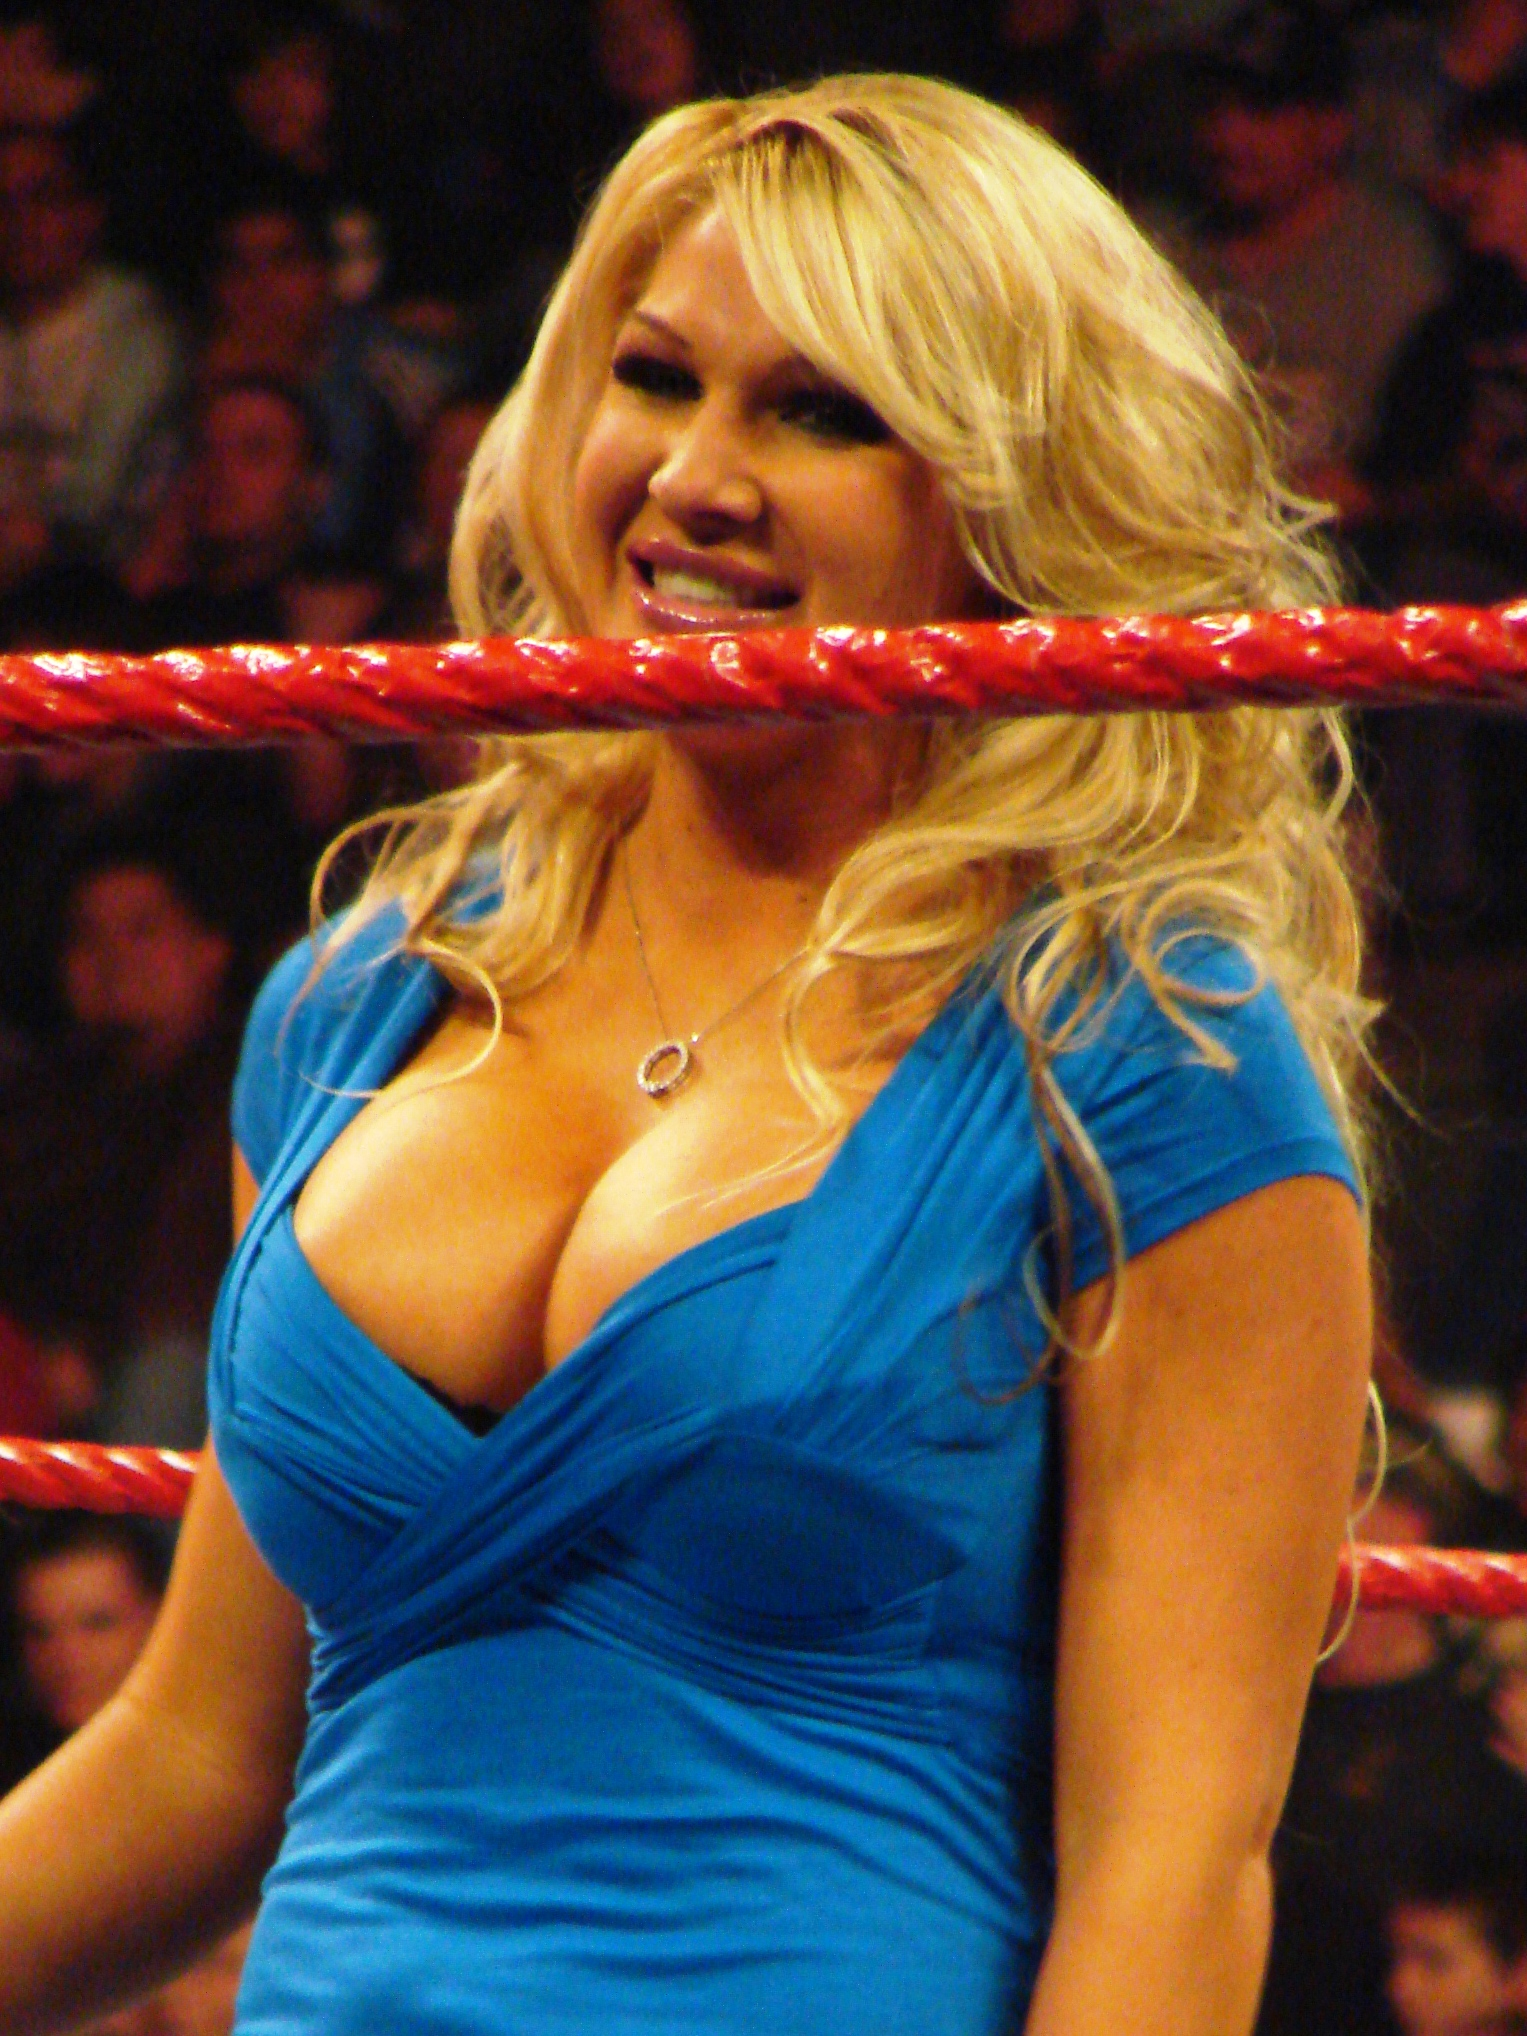 Jillian during a WWE Raw event in March 2008.